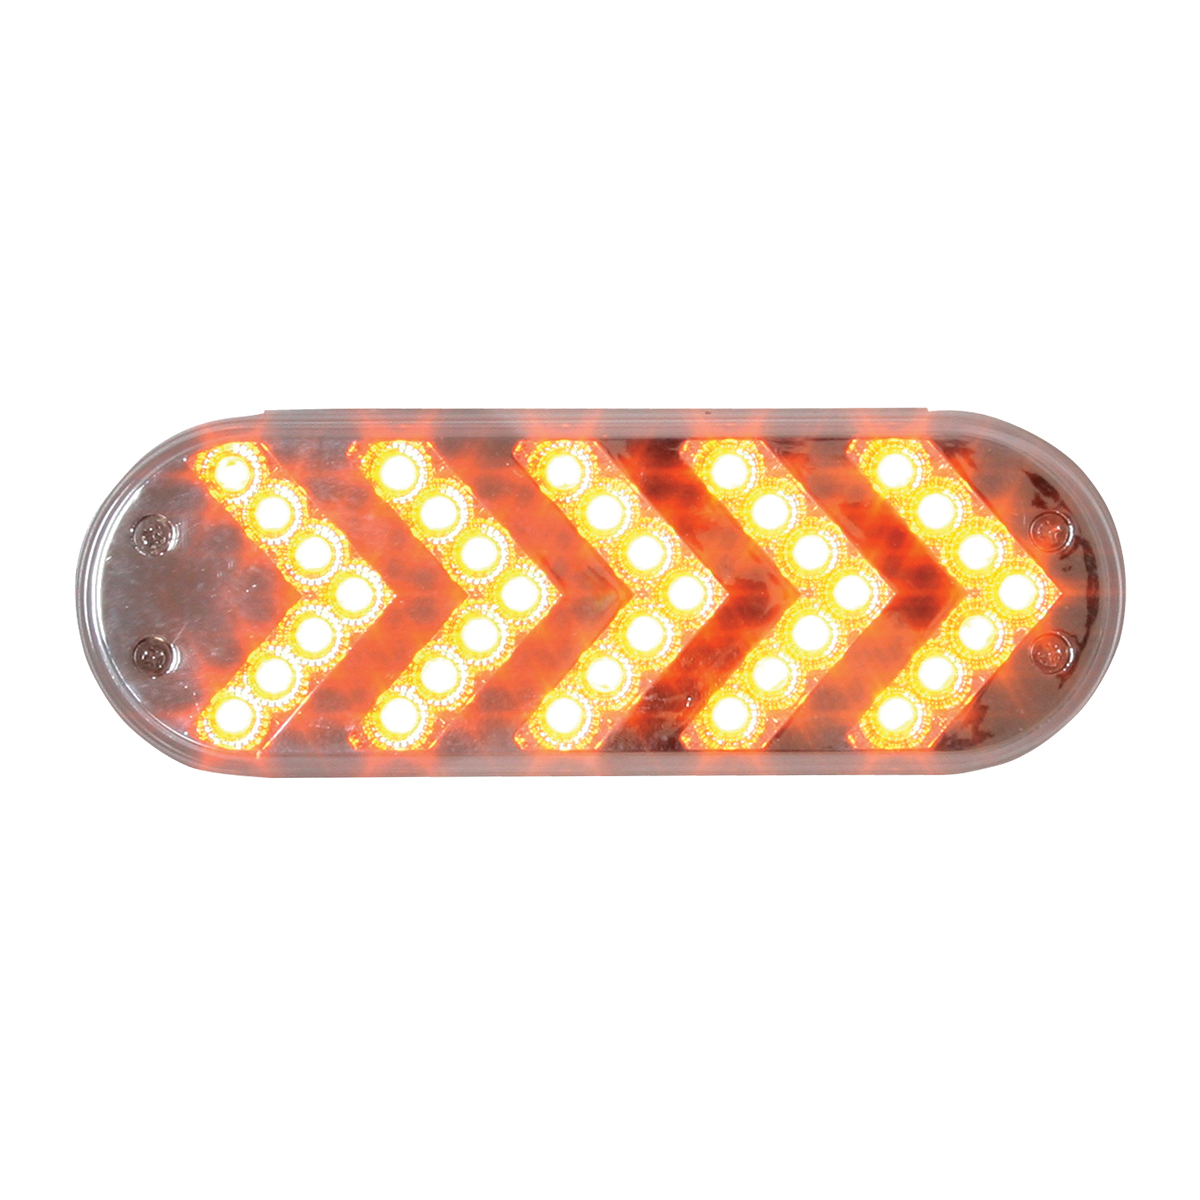 77125 Oval Sequential Arrow Spyder LED Light in Amber/Clear. 77125 Oval Sequential Arrow Spyder LED Light in Amber/Clear  sc 1 st  Grand General & Oval Sequential Arrow Mid-Turn Spyder LED Light - Grand General ... azcodes.com